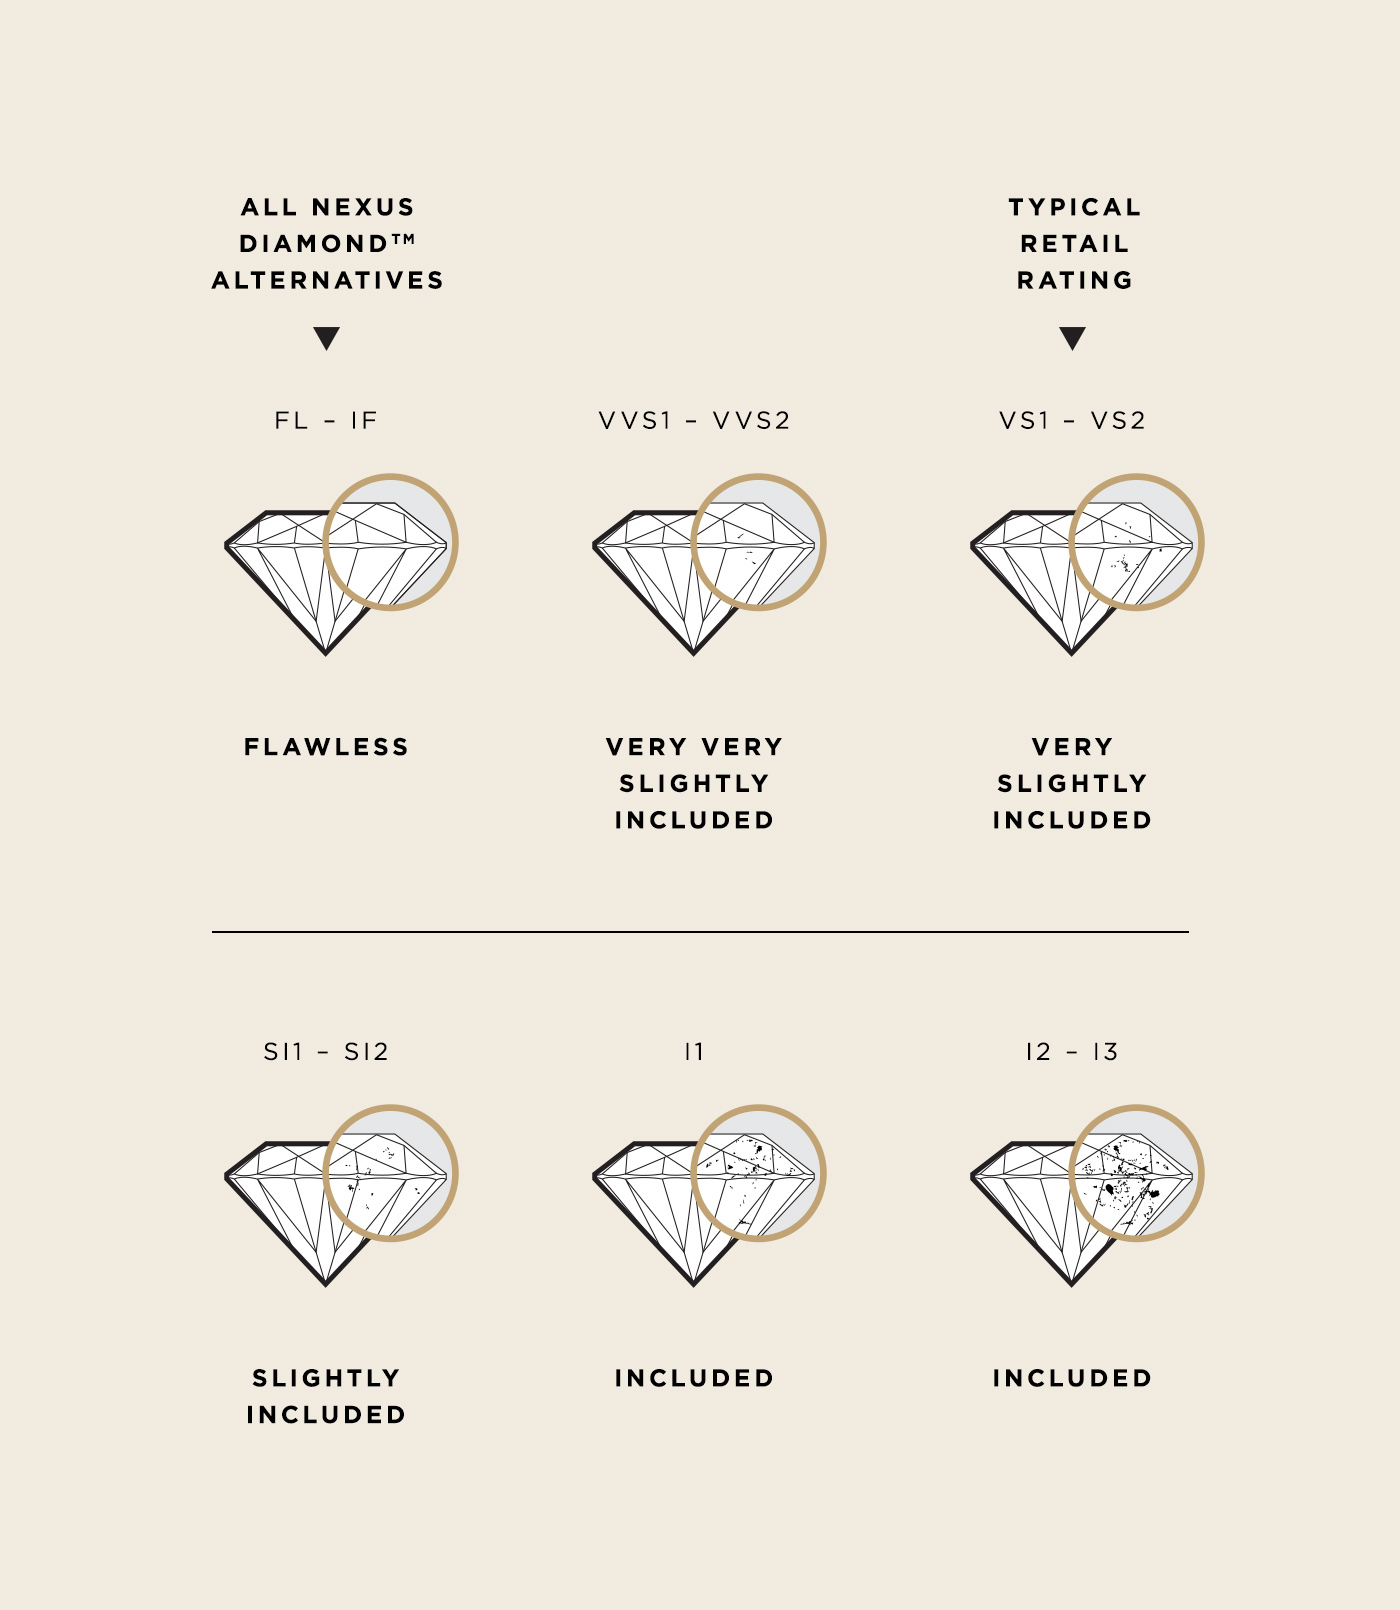 Graphic showing how more inclusions show the lower the diamond grade is.